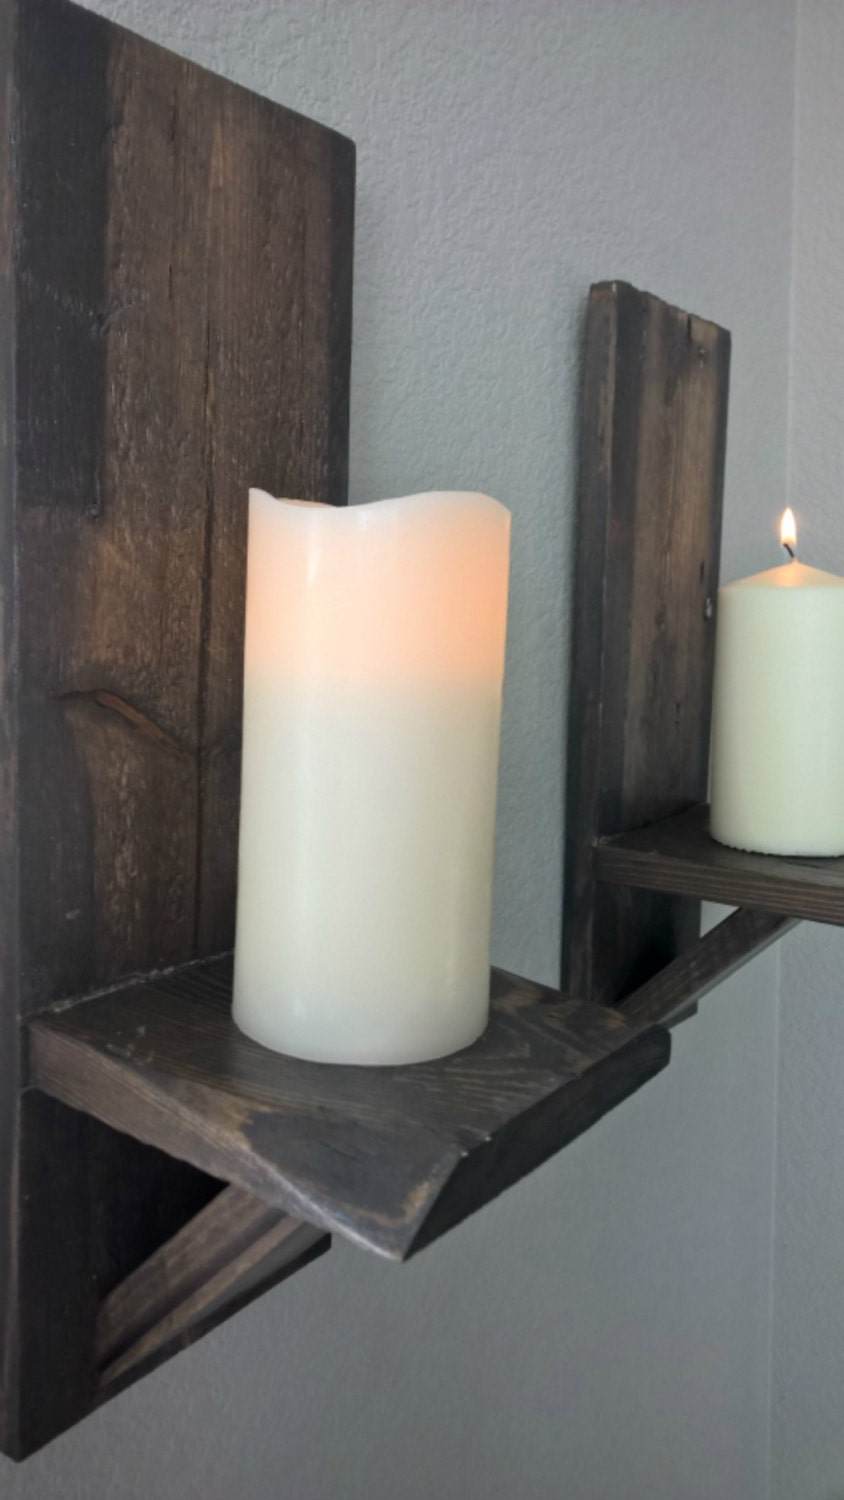 Wooden Wall Sconce Candle Holder : Candle Sconce. Wood candle holder. Wall by WoodenCraftStudio